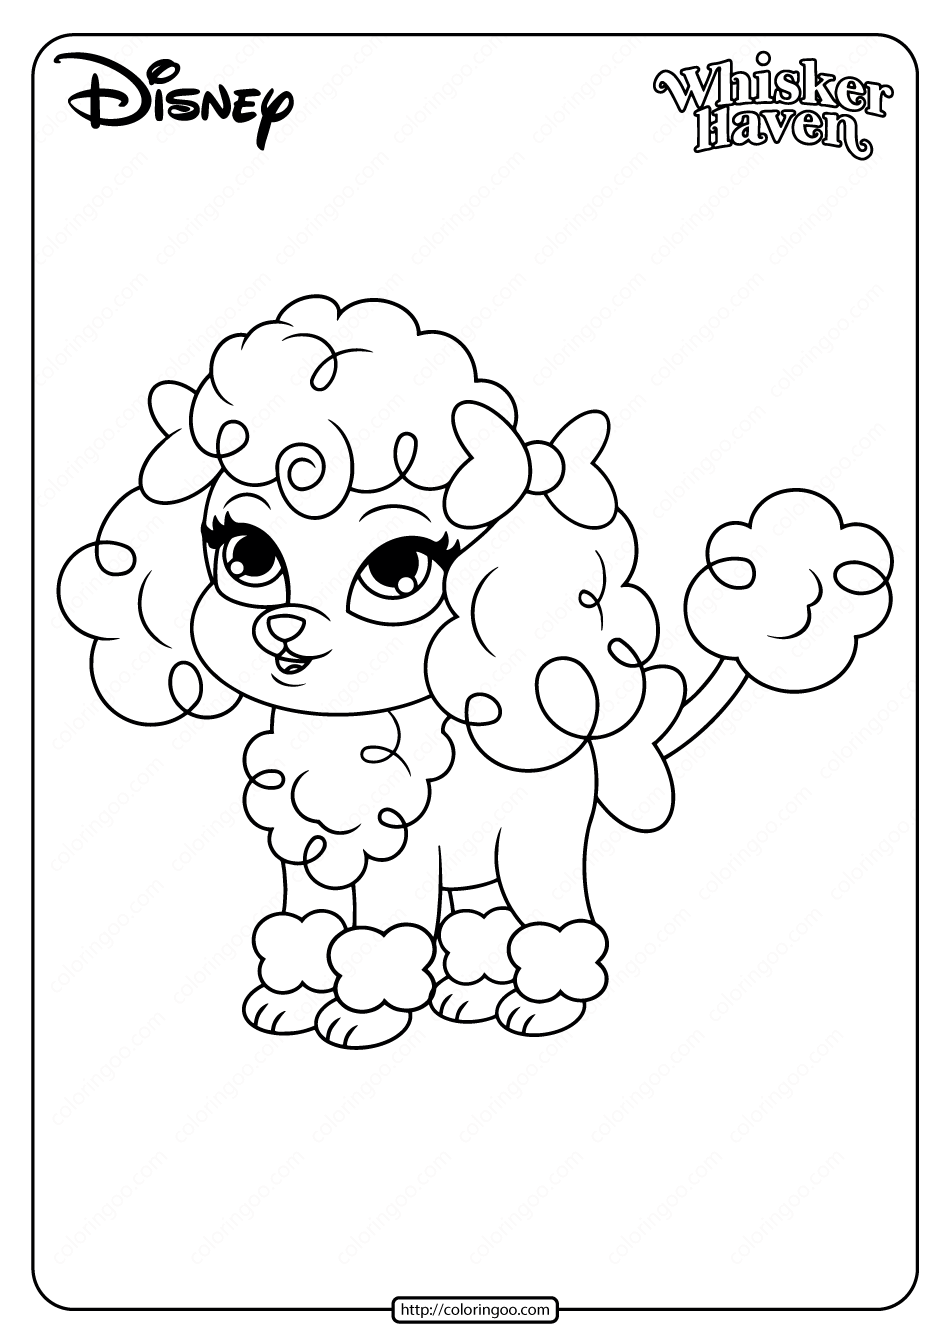 Printable Palace Pets Lacy Pdf Coloring Pages In 2020 Disney Coloring Pages Dog Coloring Page Princess Palace Pets